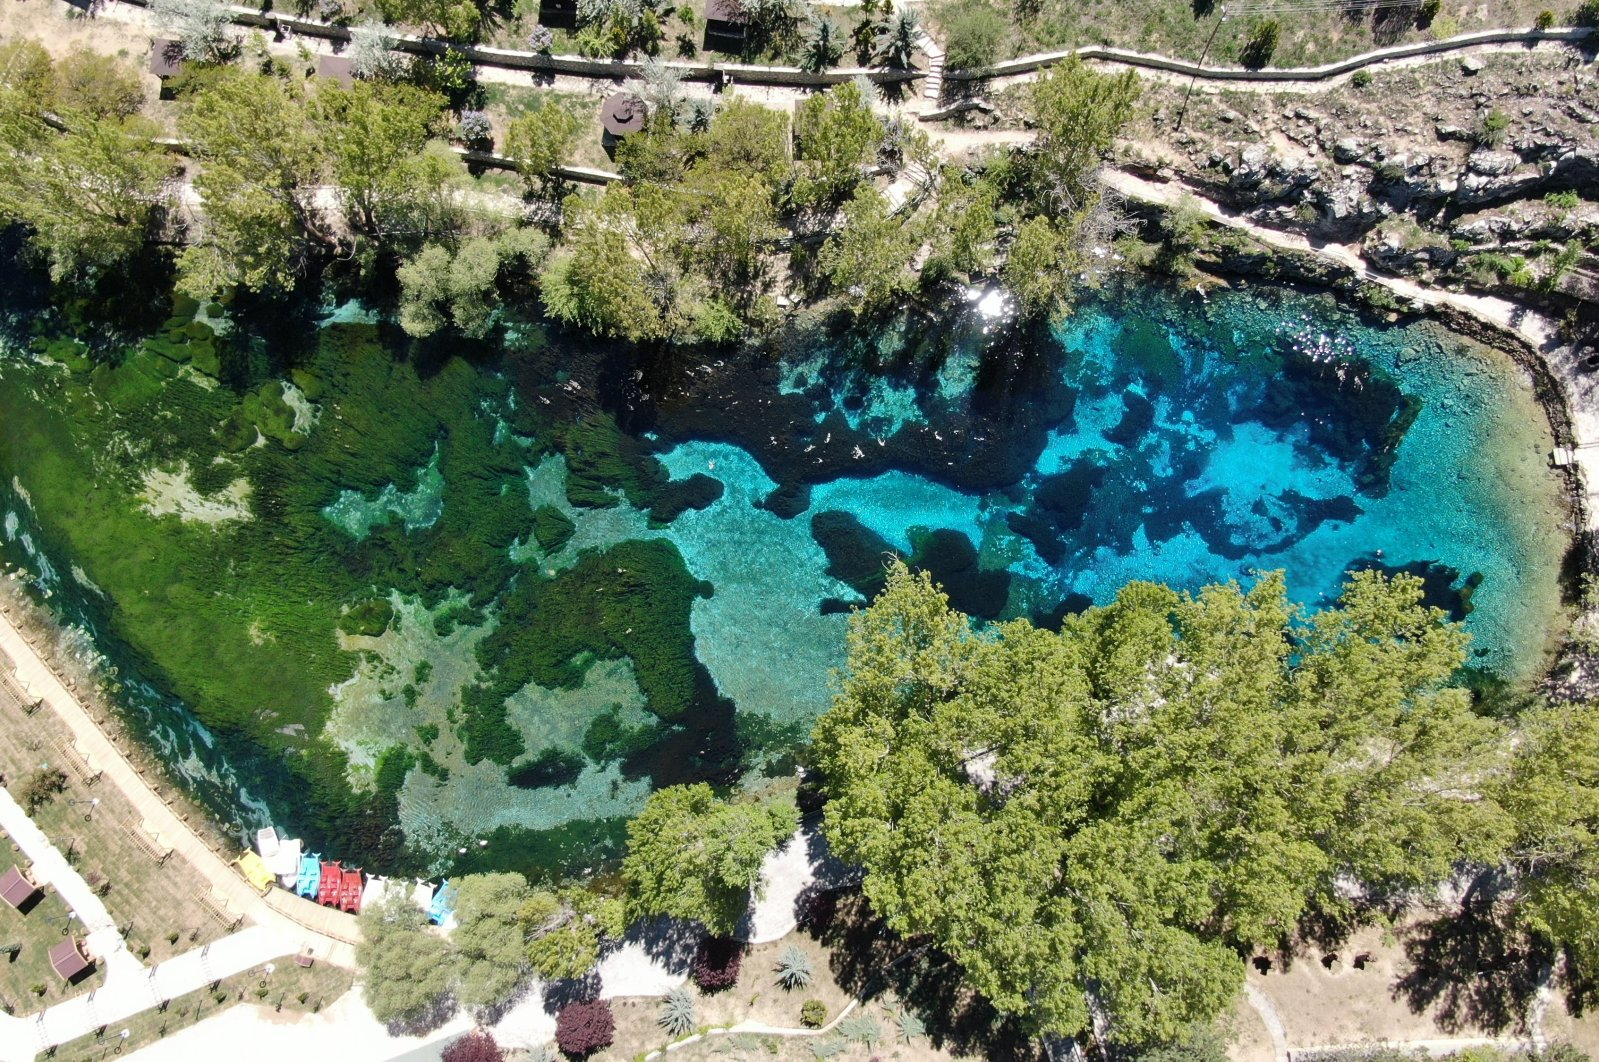 """A recent addition to Turkey's """"Natural Protected Sites"""" list, Lake Gökpınar's water is so clear that its entire lakebed is visible, Sivas, Turkey, May 14, 2021. (IHA Photo)"""